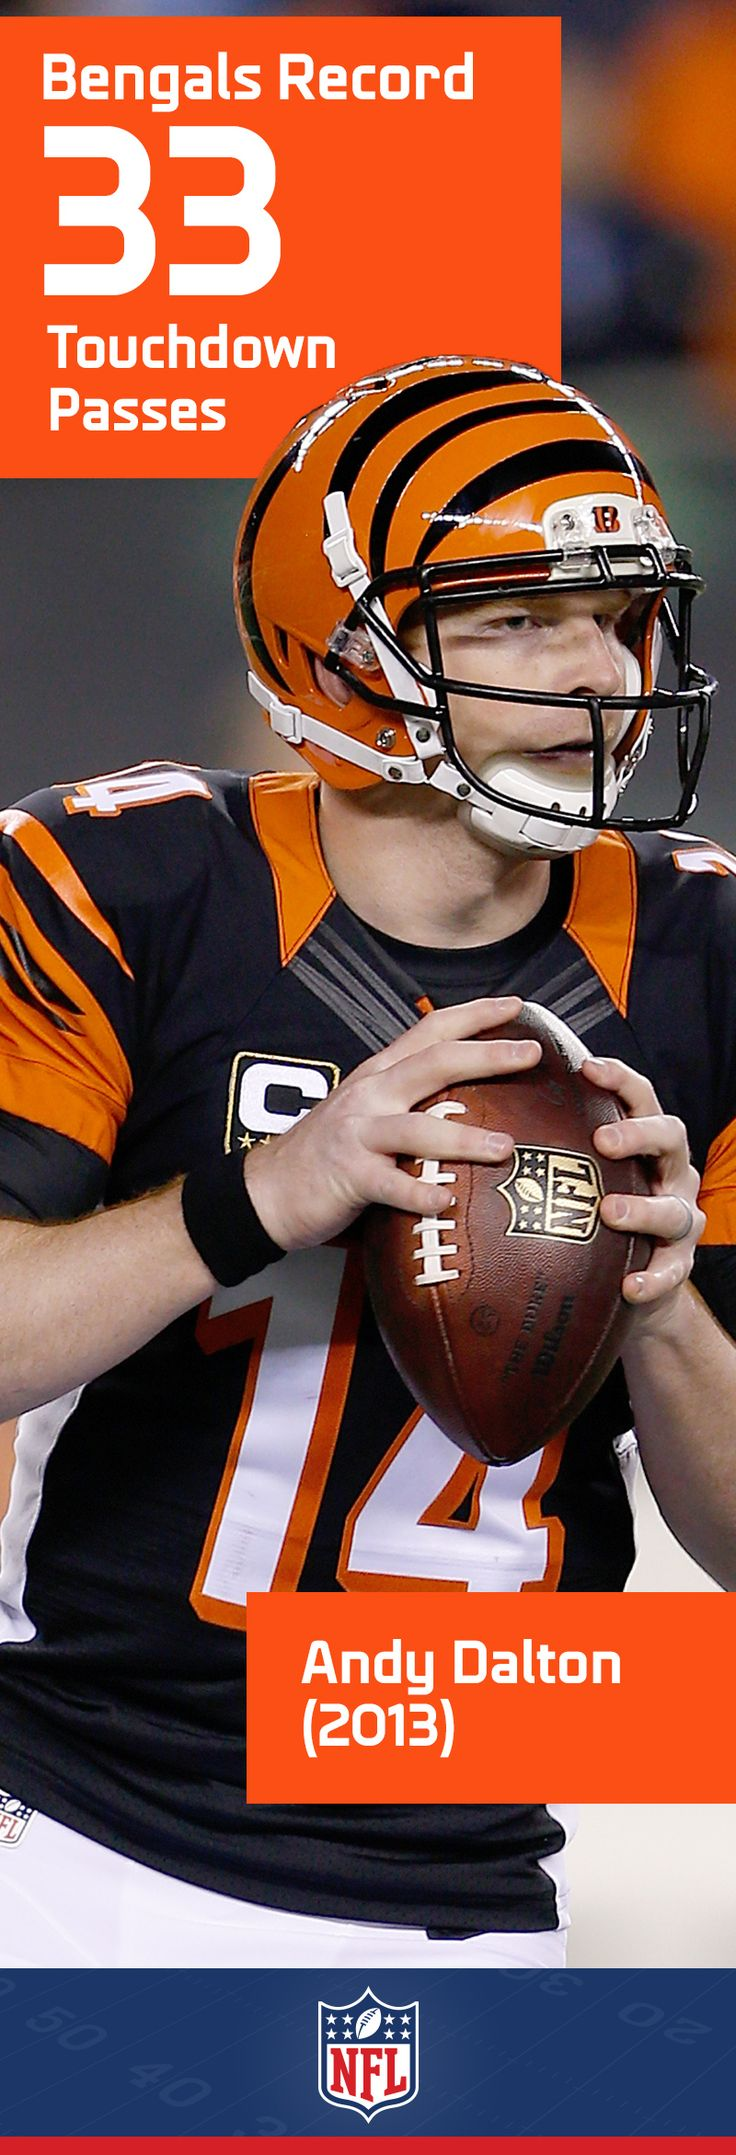 QB Andy Dalton knows how to get it in the end zone, and in 2013 the Red Rifle set a Cincinnati record with 33 touchdowns.